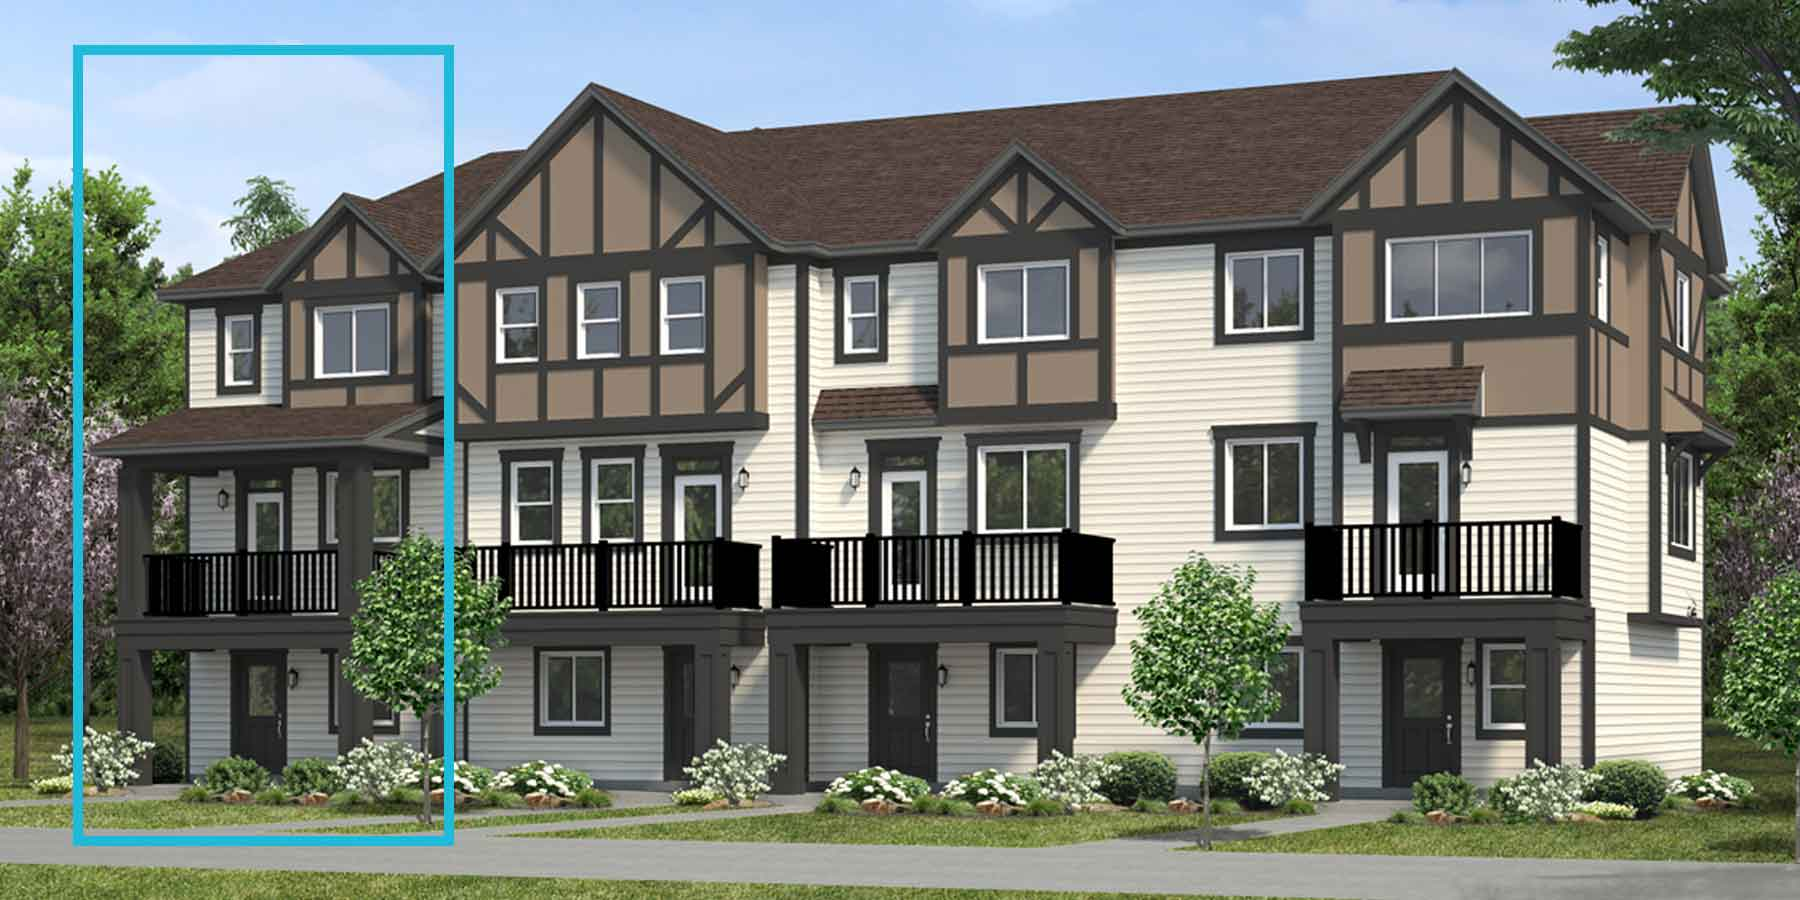 Harvest End Plan TownHomes at Crescent Trails in Edmonton Alberta by Mattamy Homes